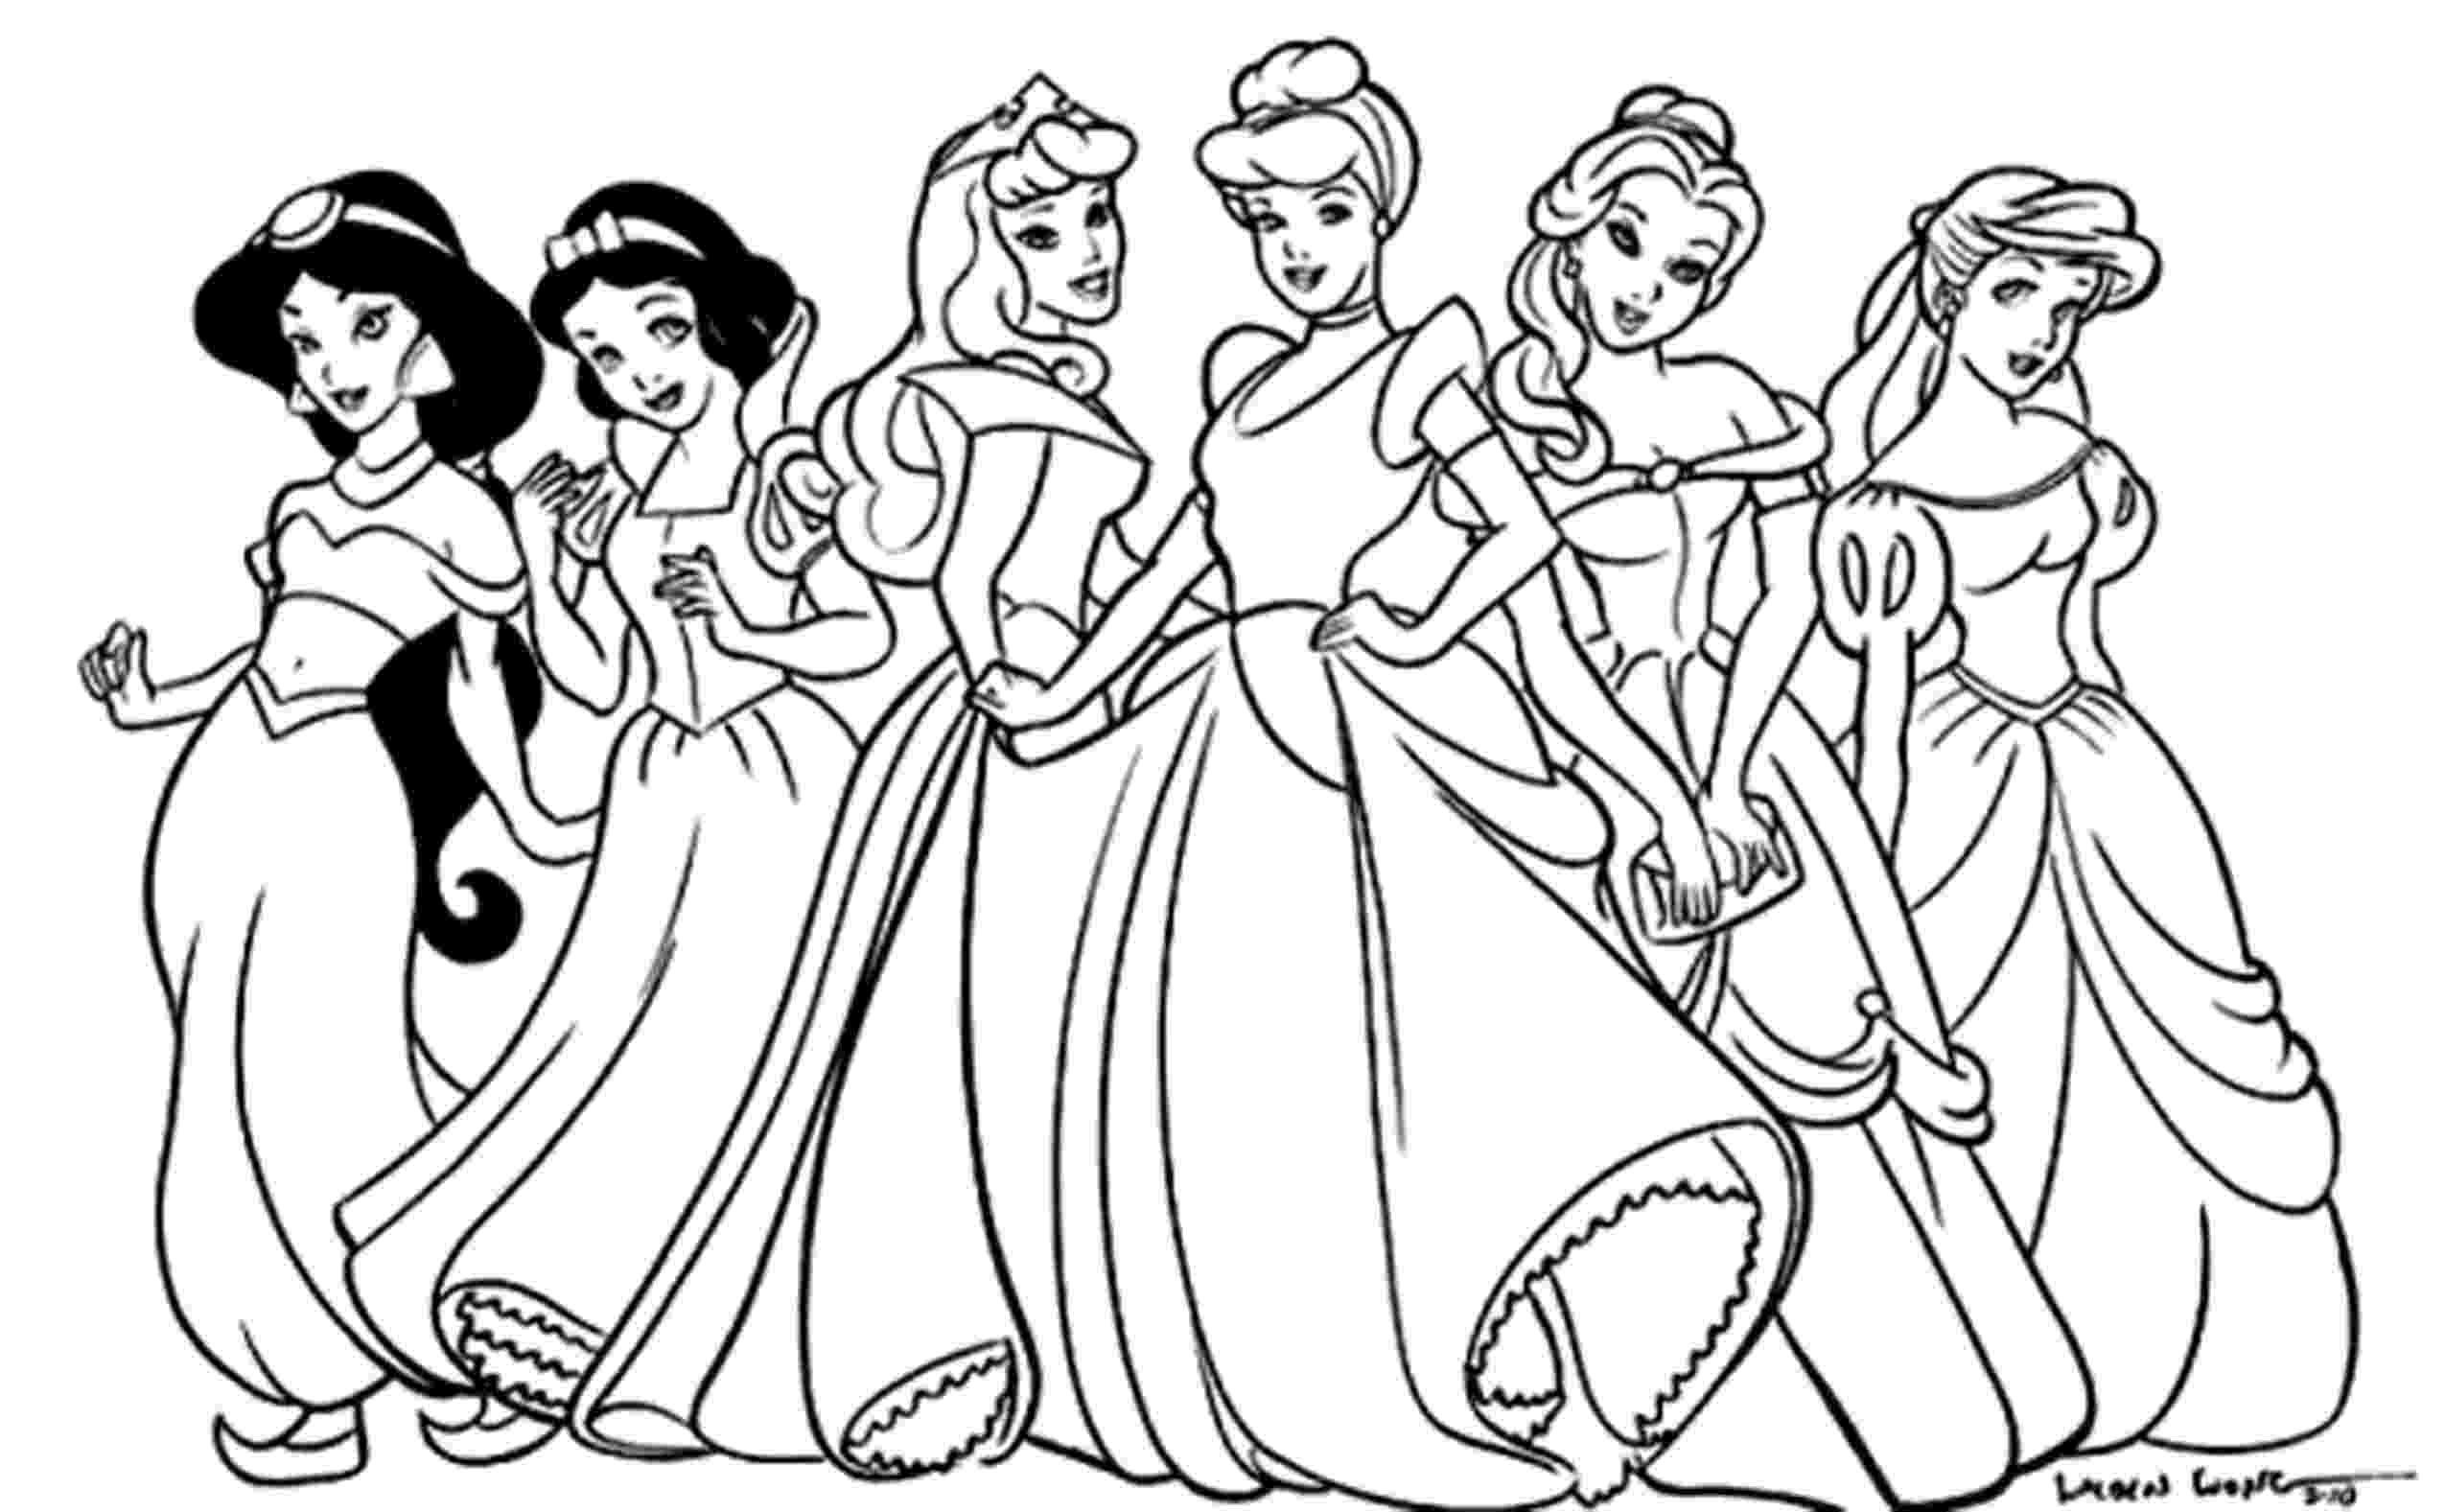 free disney princess coloring pages disney princess printable colouring pages coloring pages disney princess free pages coloring